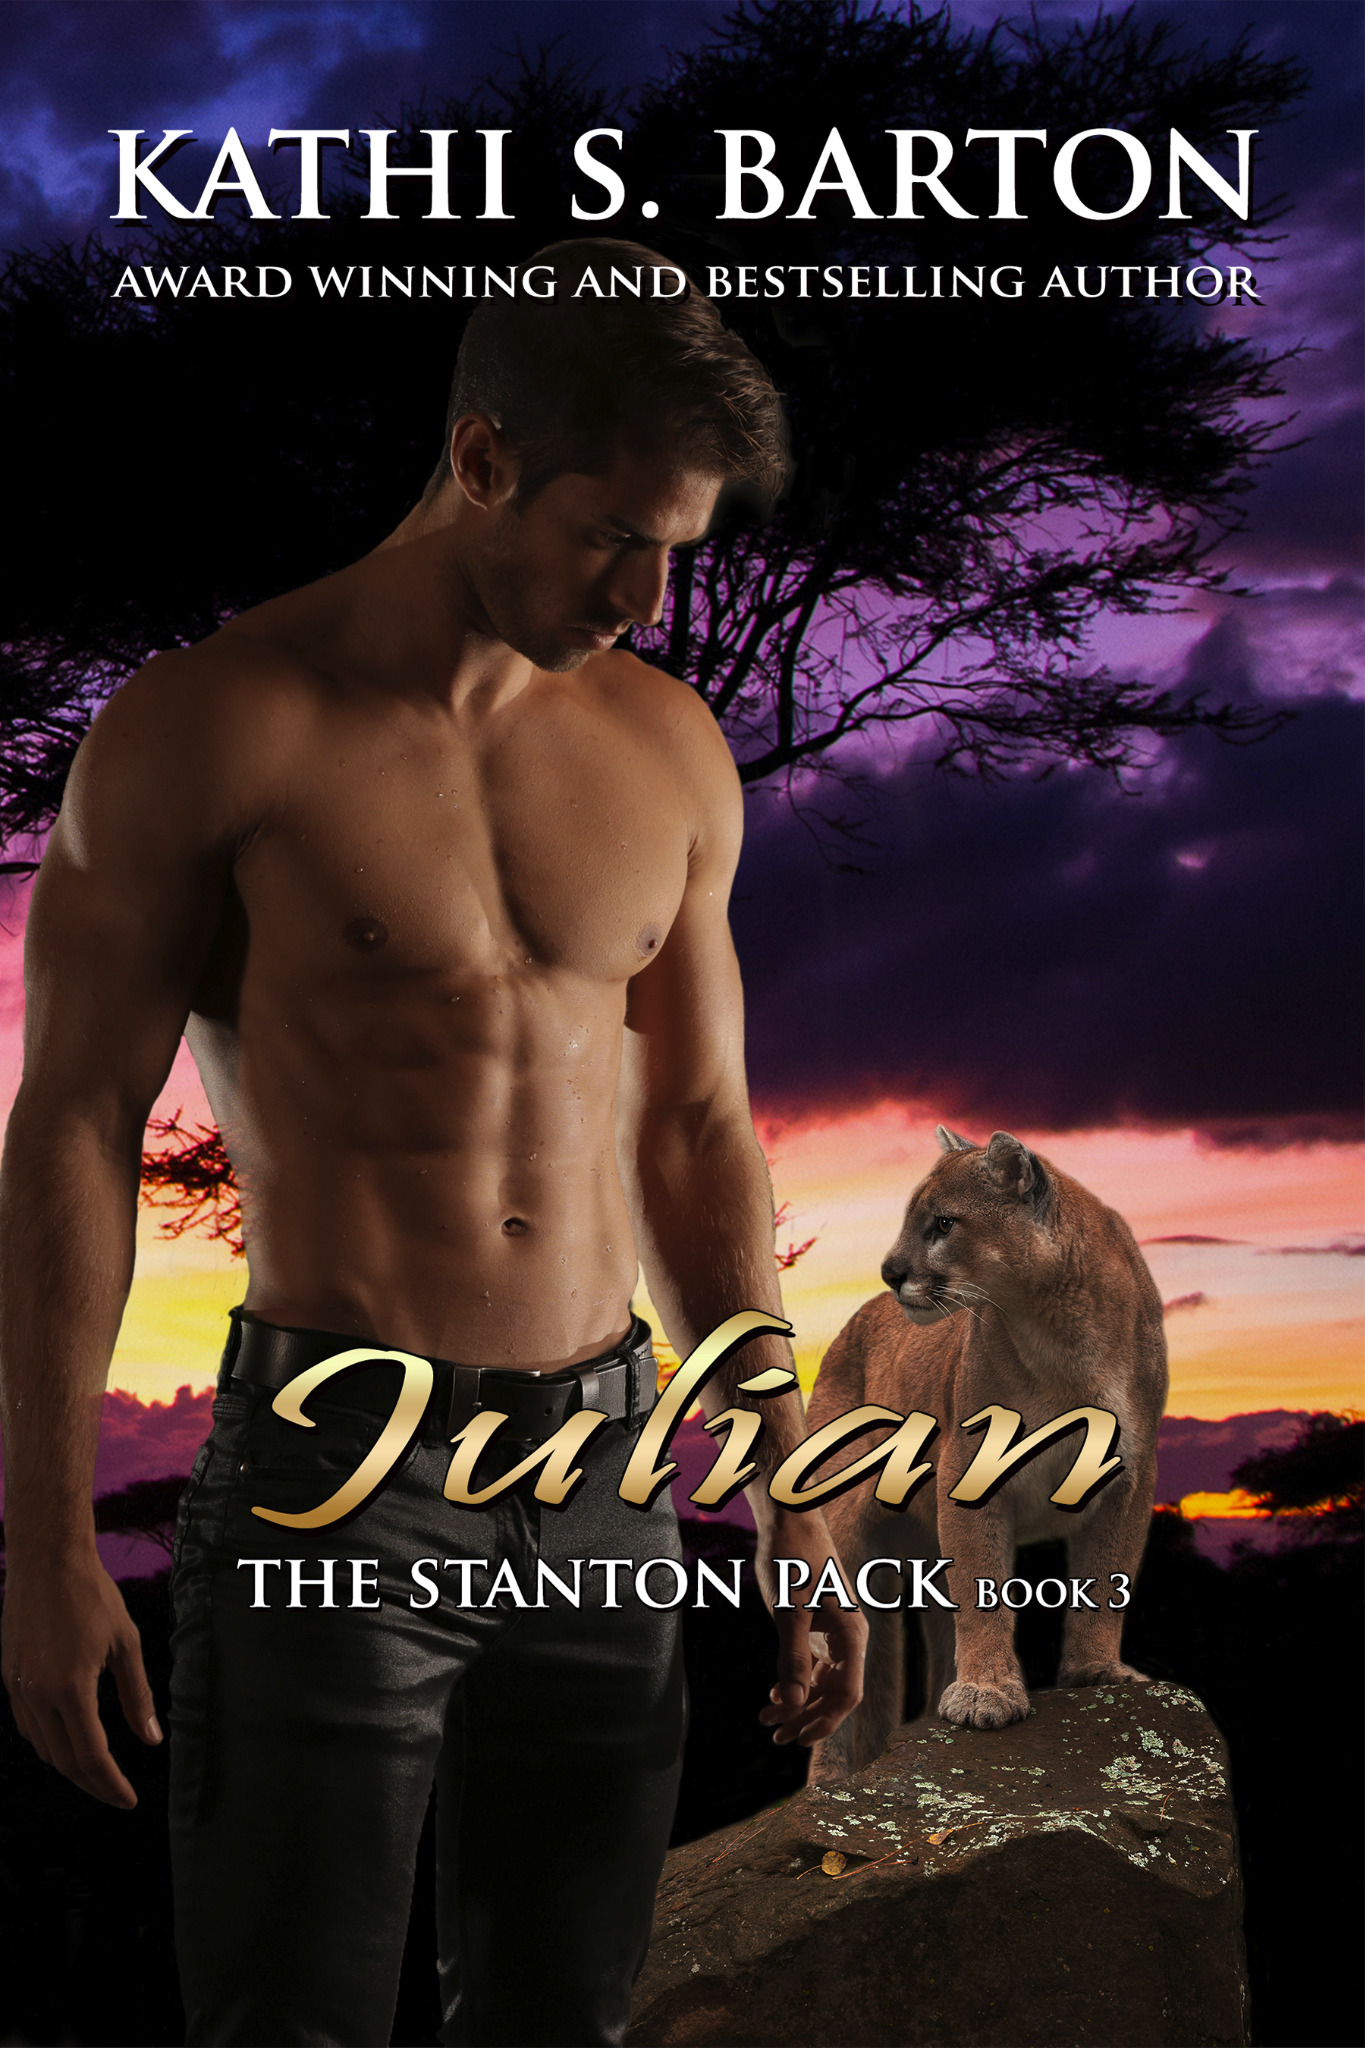 Julian - The Stanton Pack Book 3